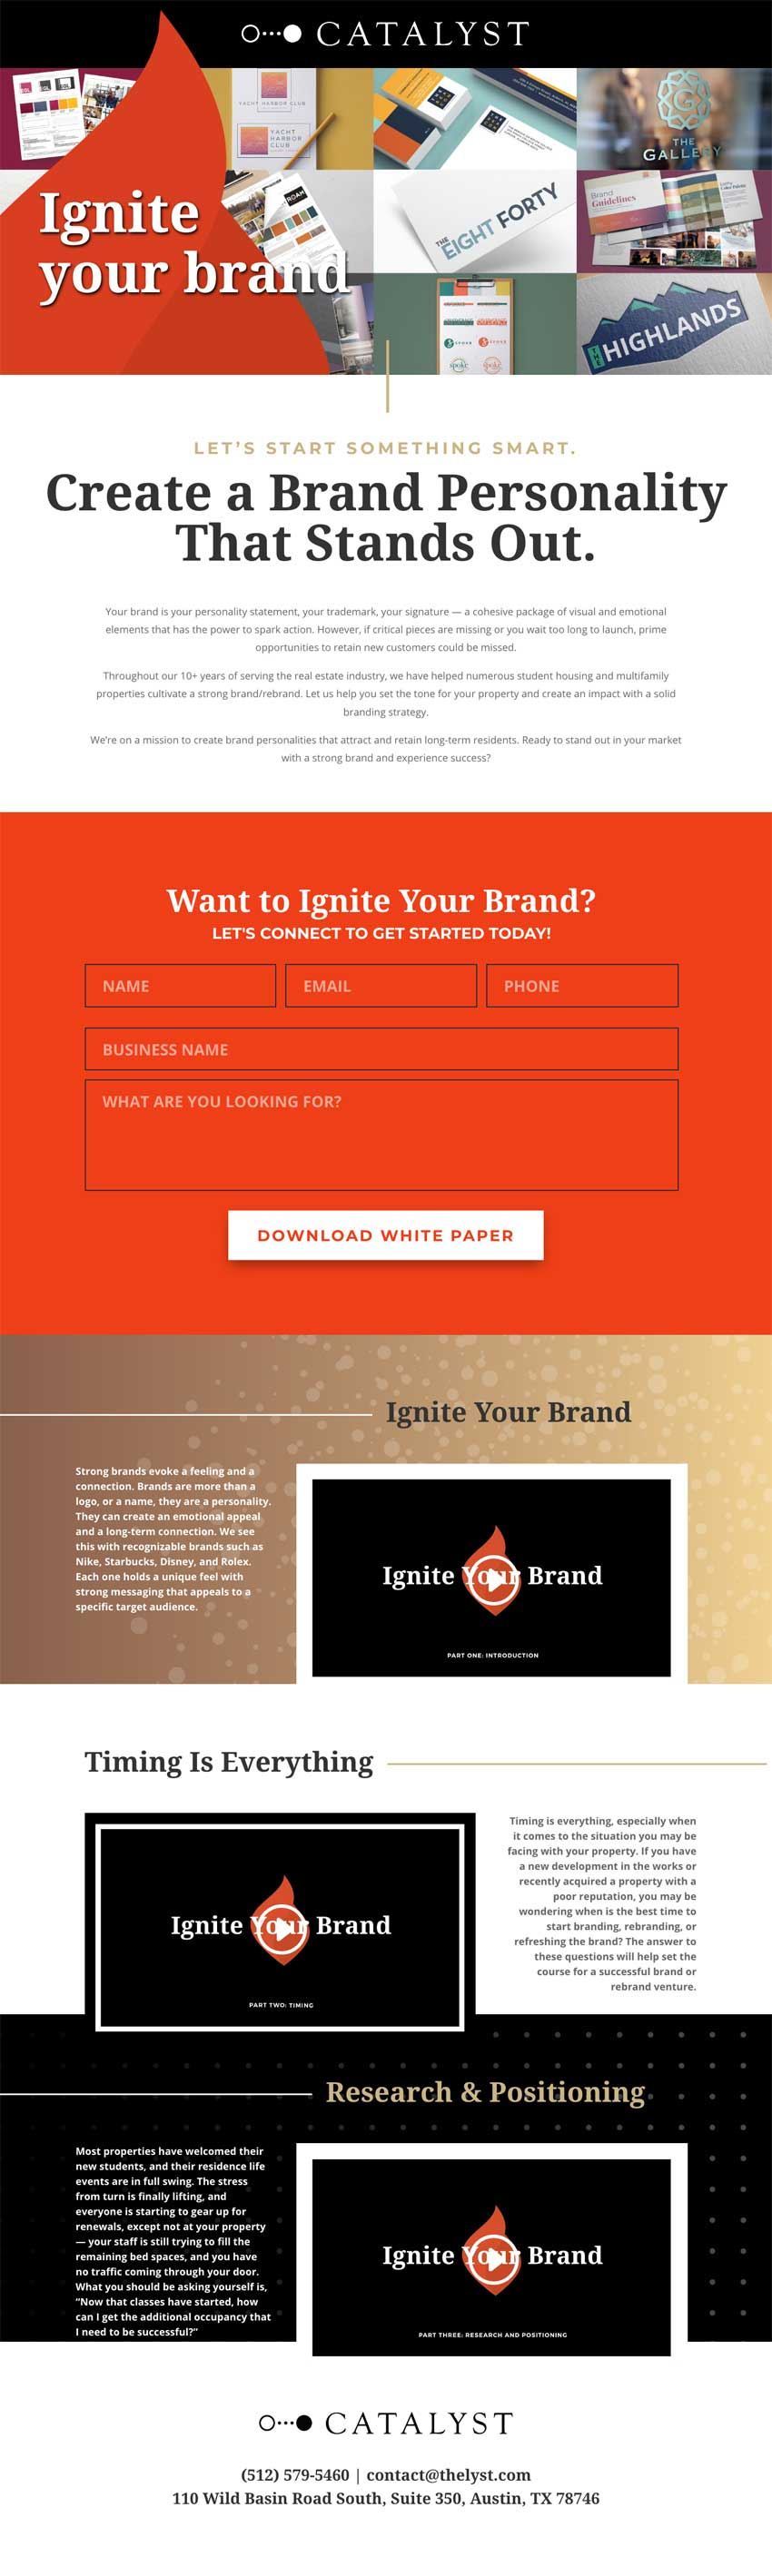 Campus Advantage landing page for Ignite Your Brand campaign